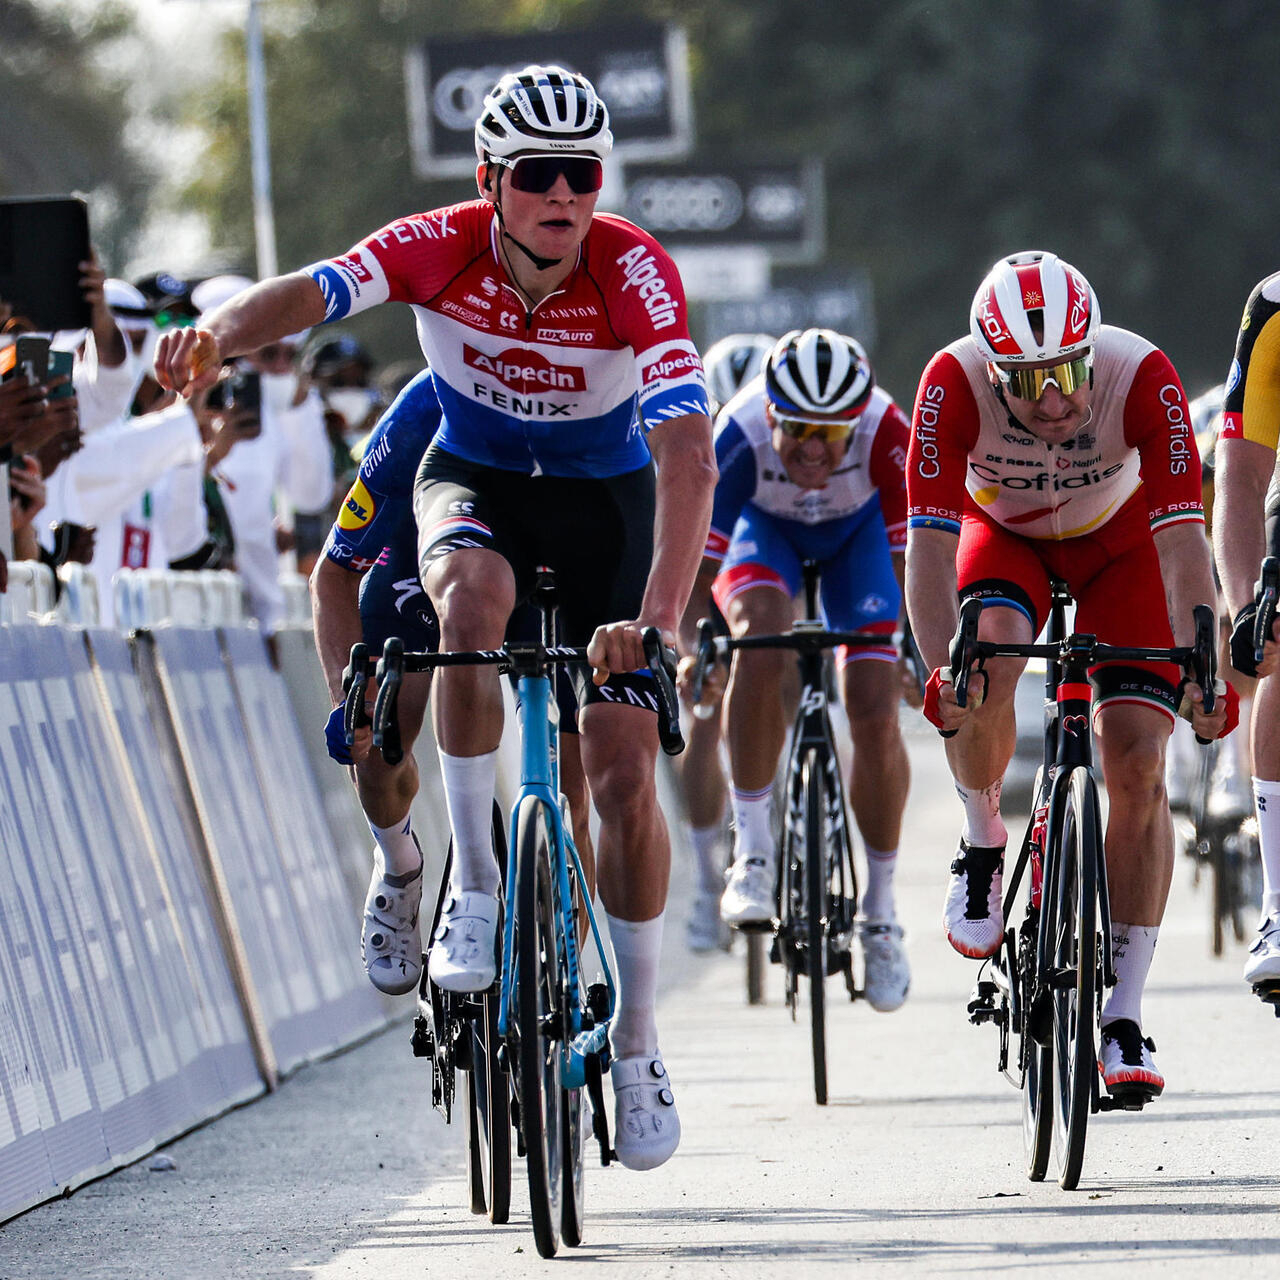 Van der Poel makes winning start to UAE Tour as Froome eases in - France 24